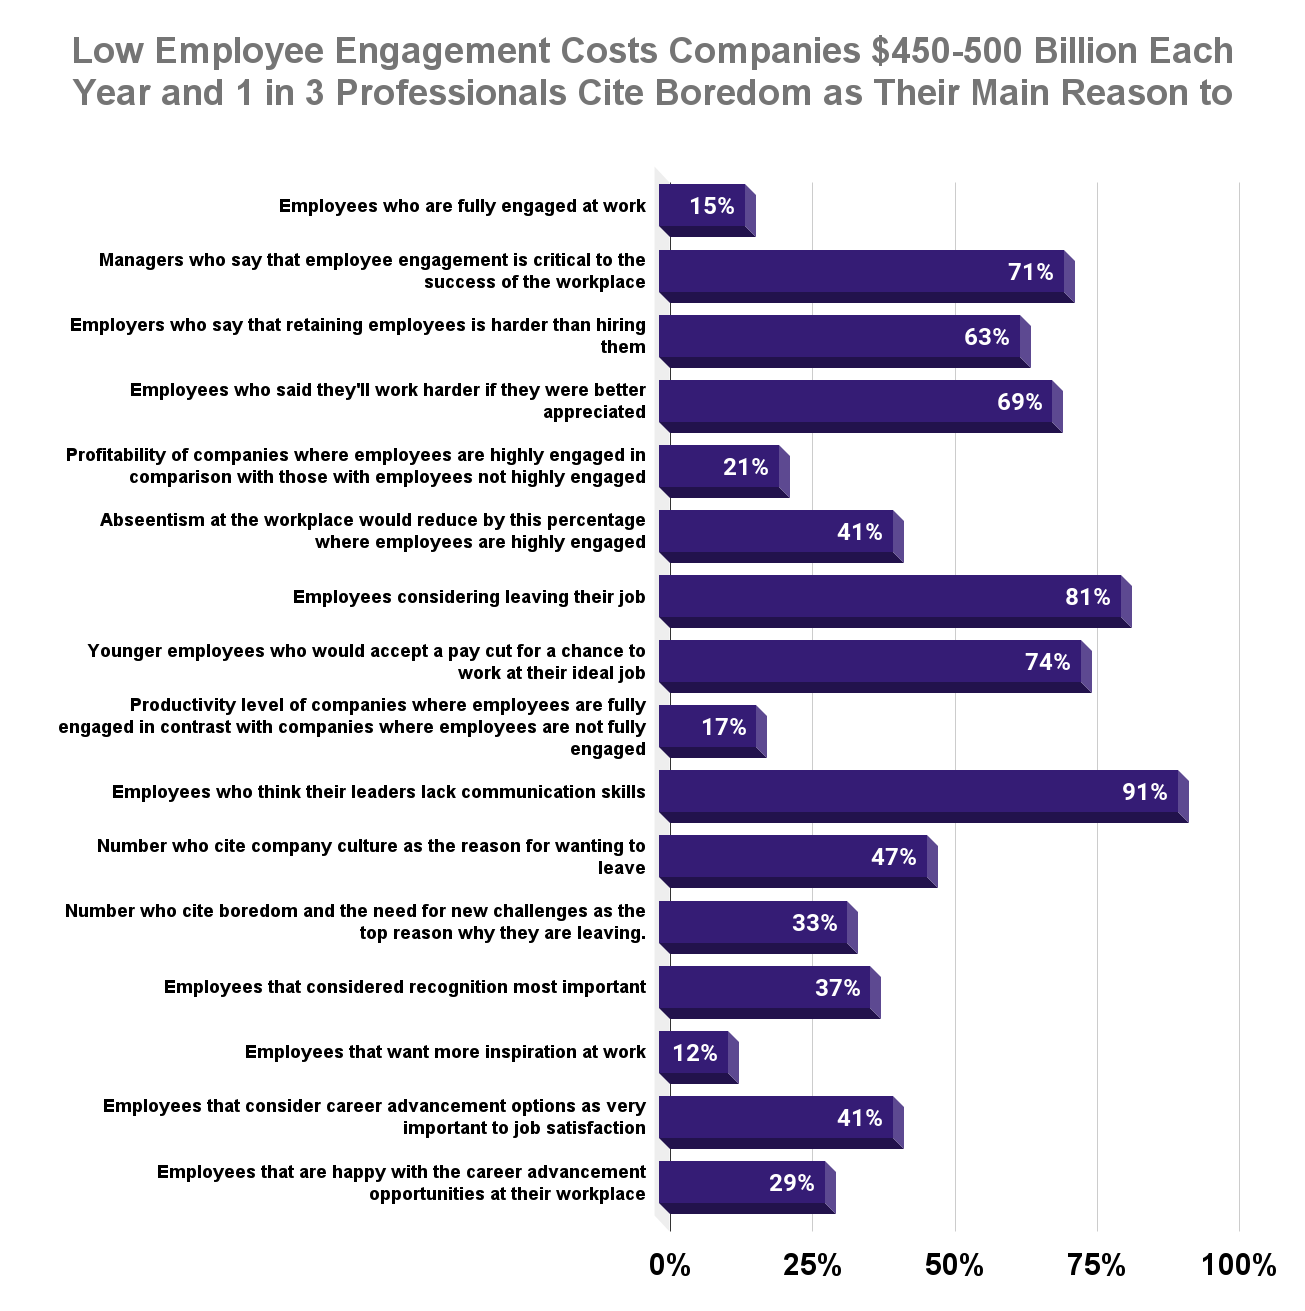 Low Employee Engagement Costs Companies $450-500 Billion Each Year and 1 in 3 Professionals Cite Boredom as Their Main Reason to Leave Their Jobs